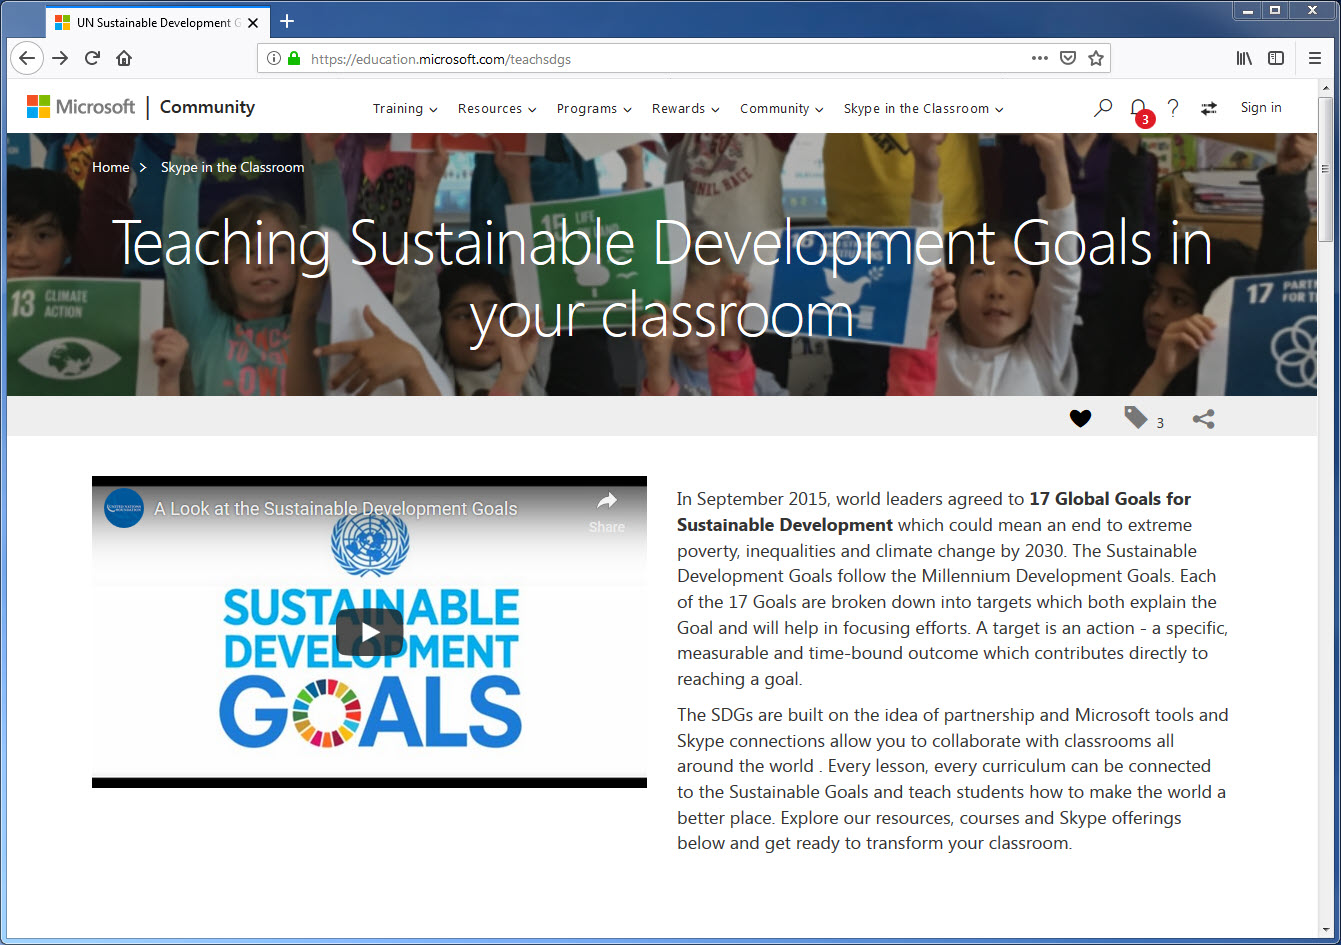 Microsoft - Teaching Sustainable Development Goals in your classroom